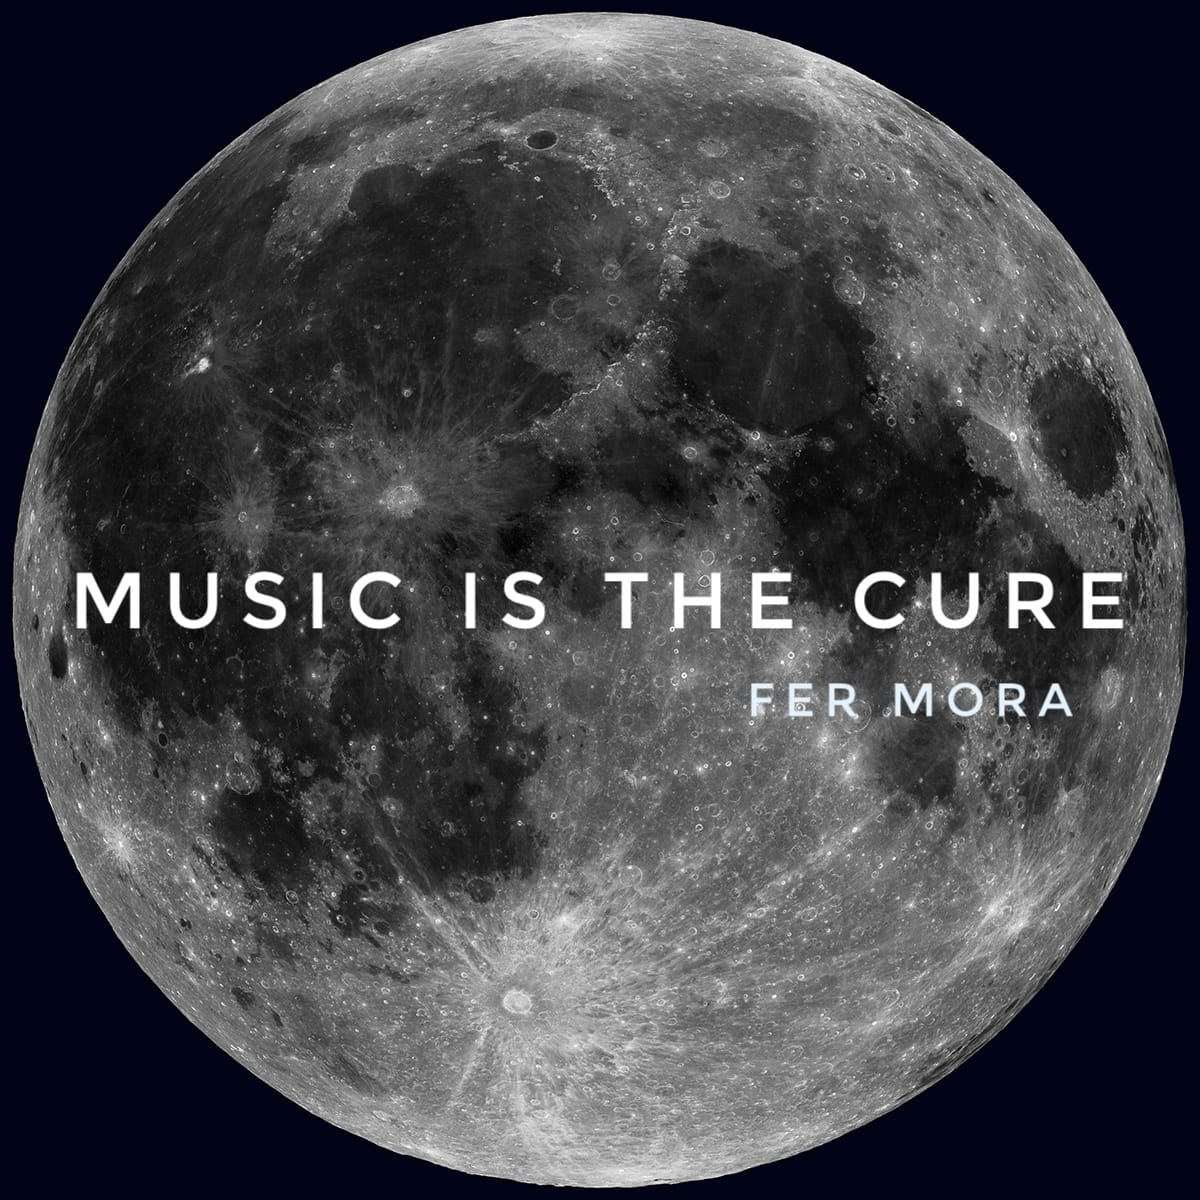 Music Is The Cure :: Episode aired on November 2, 2020, 11pm banner logo